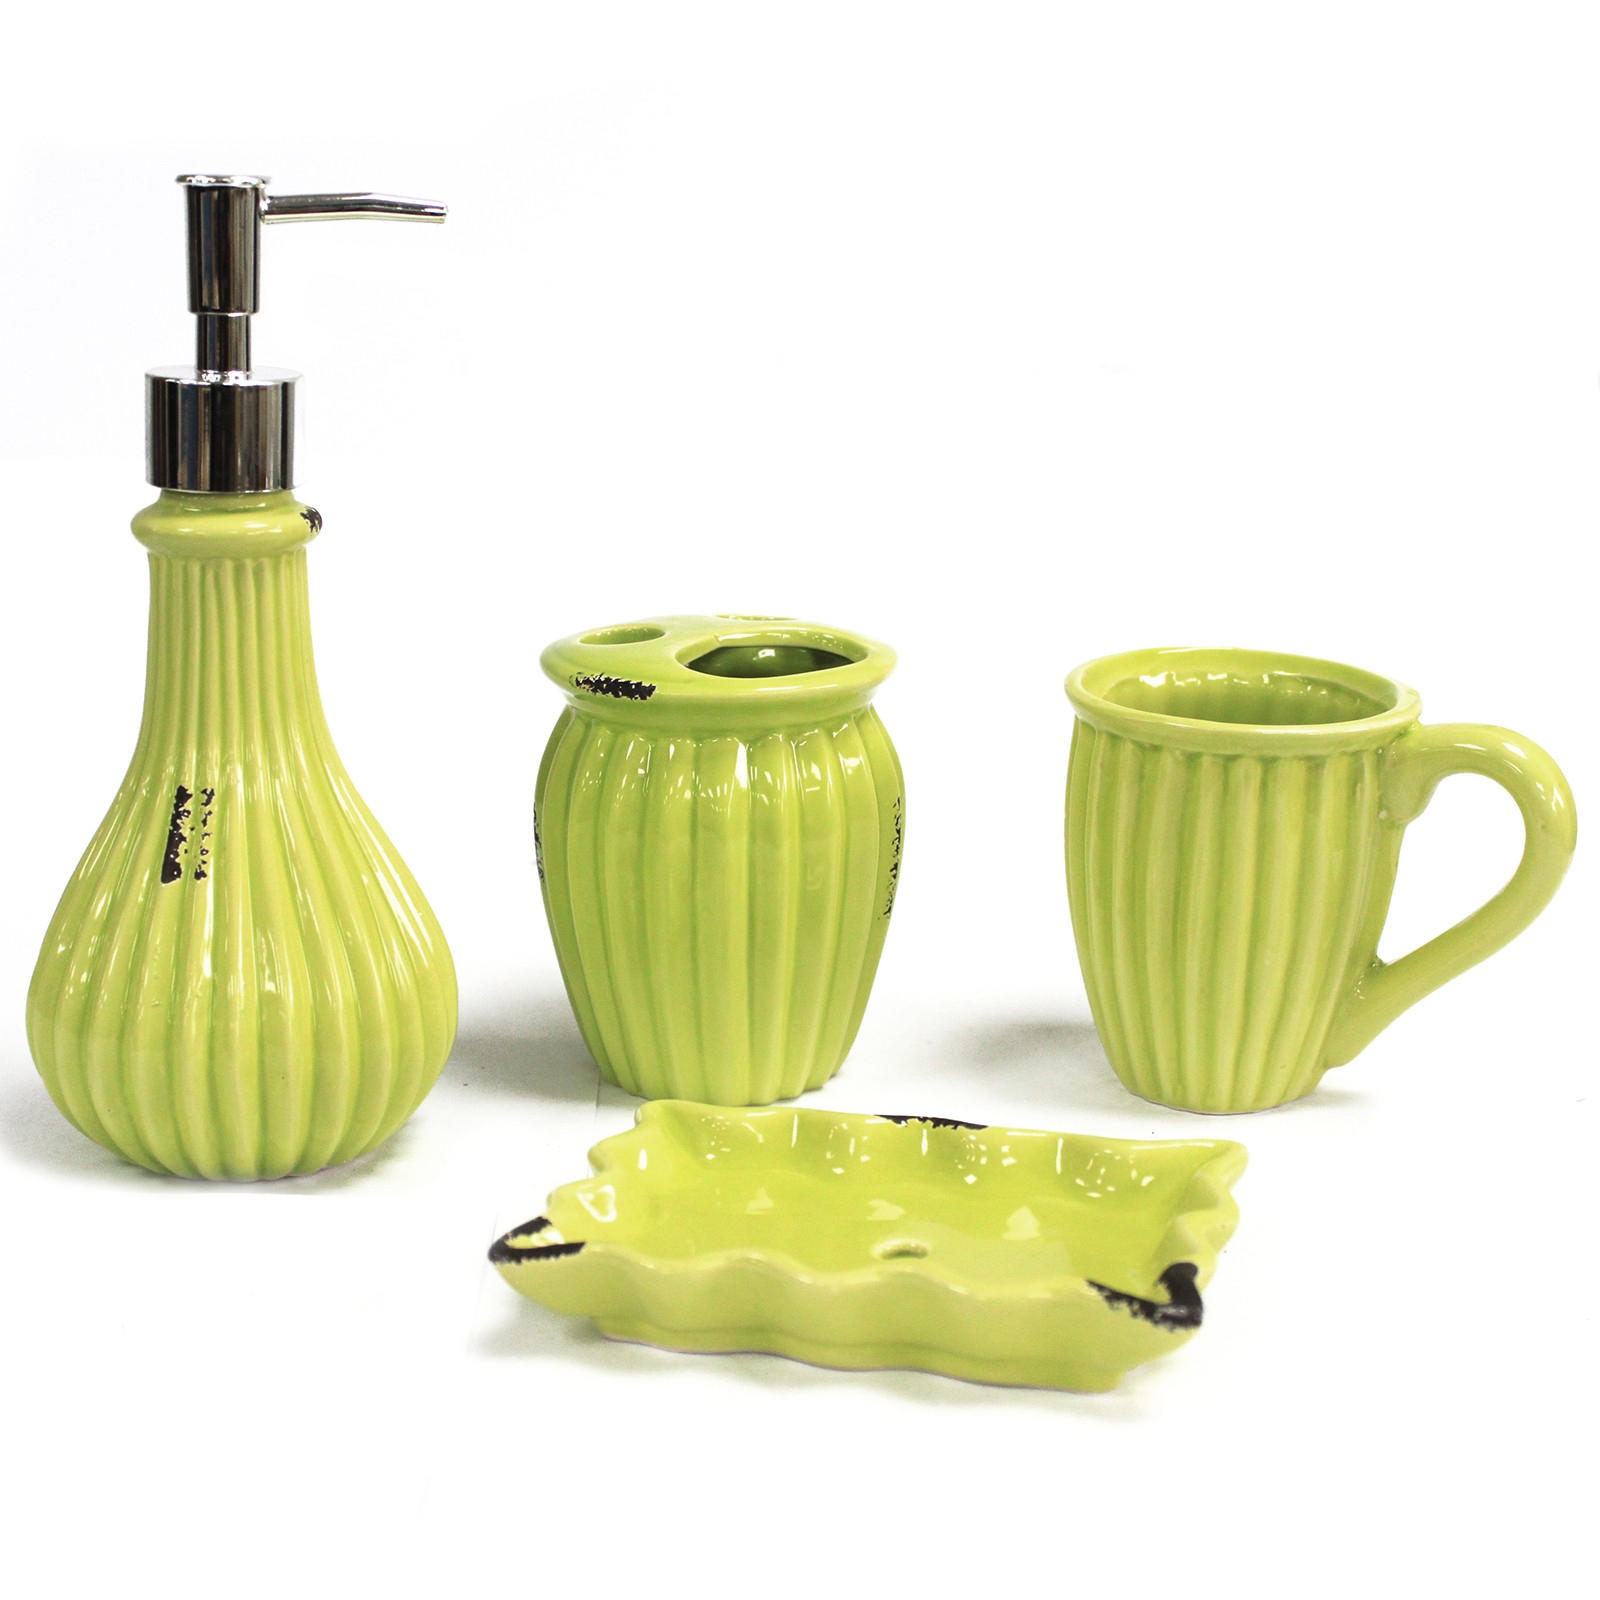 Vintage Lime ceramic bathroom set